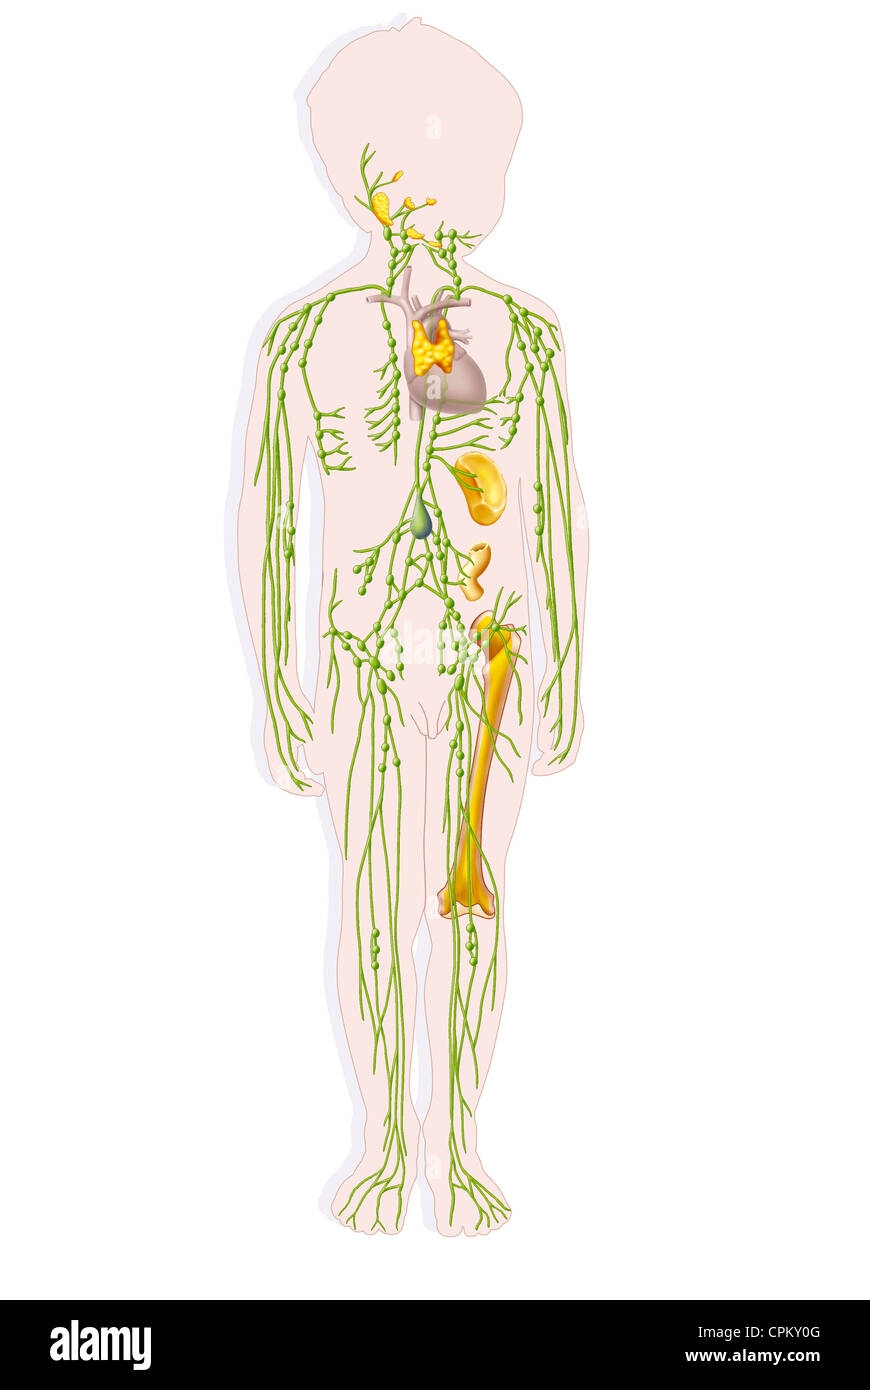 CHILD LYMPHATIC SYSTEM, DRAWING - Stock Image